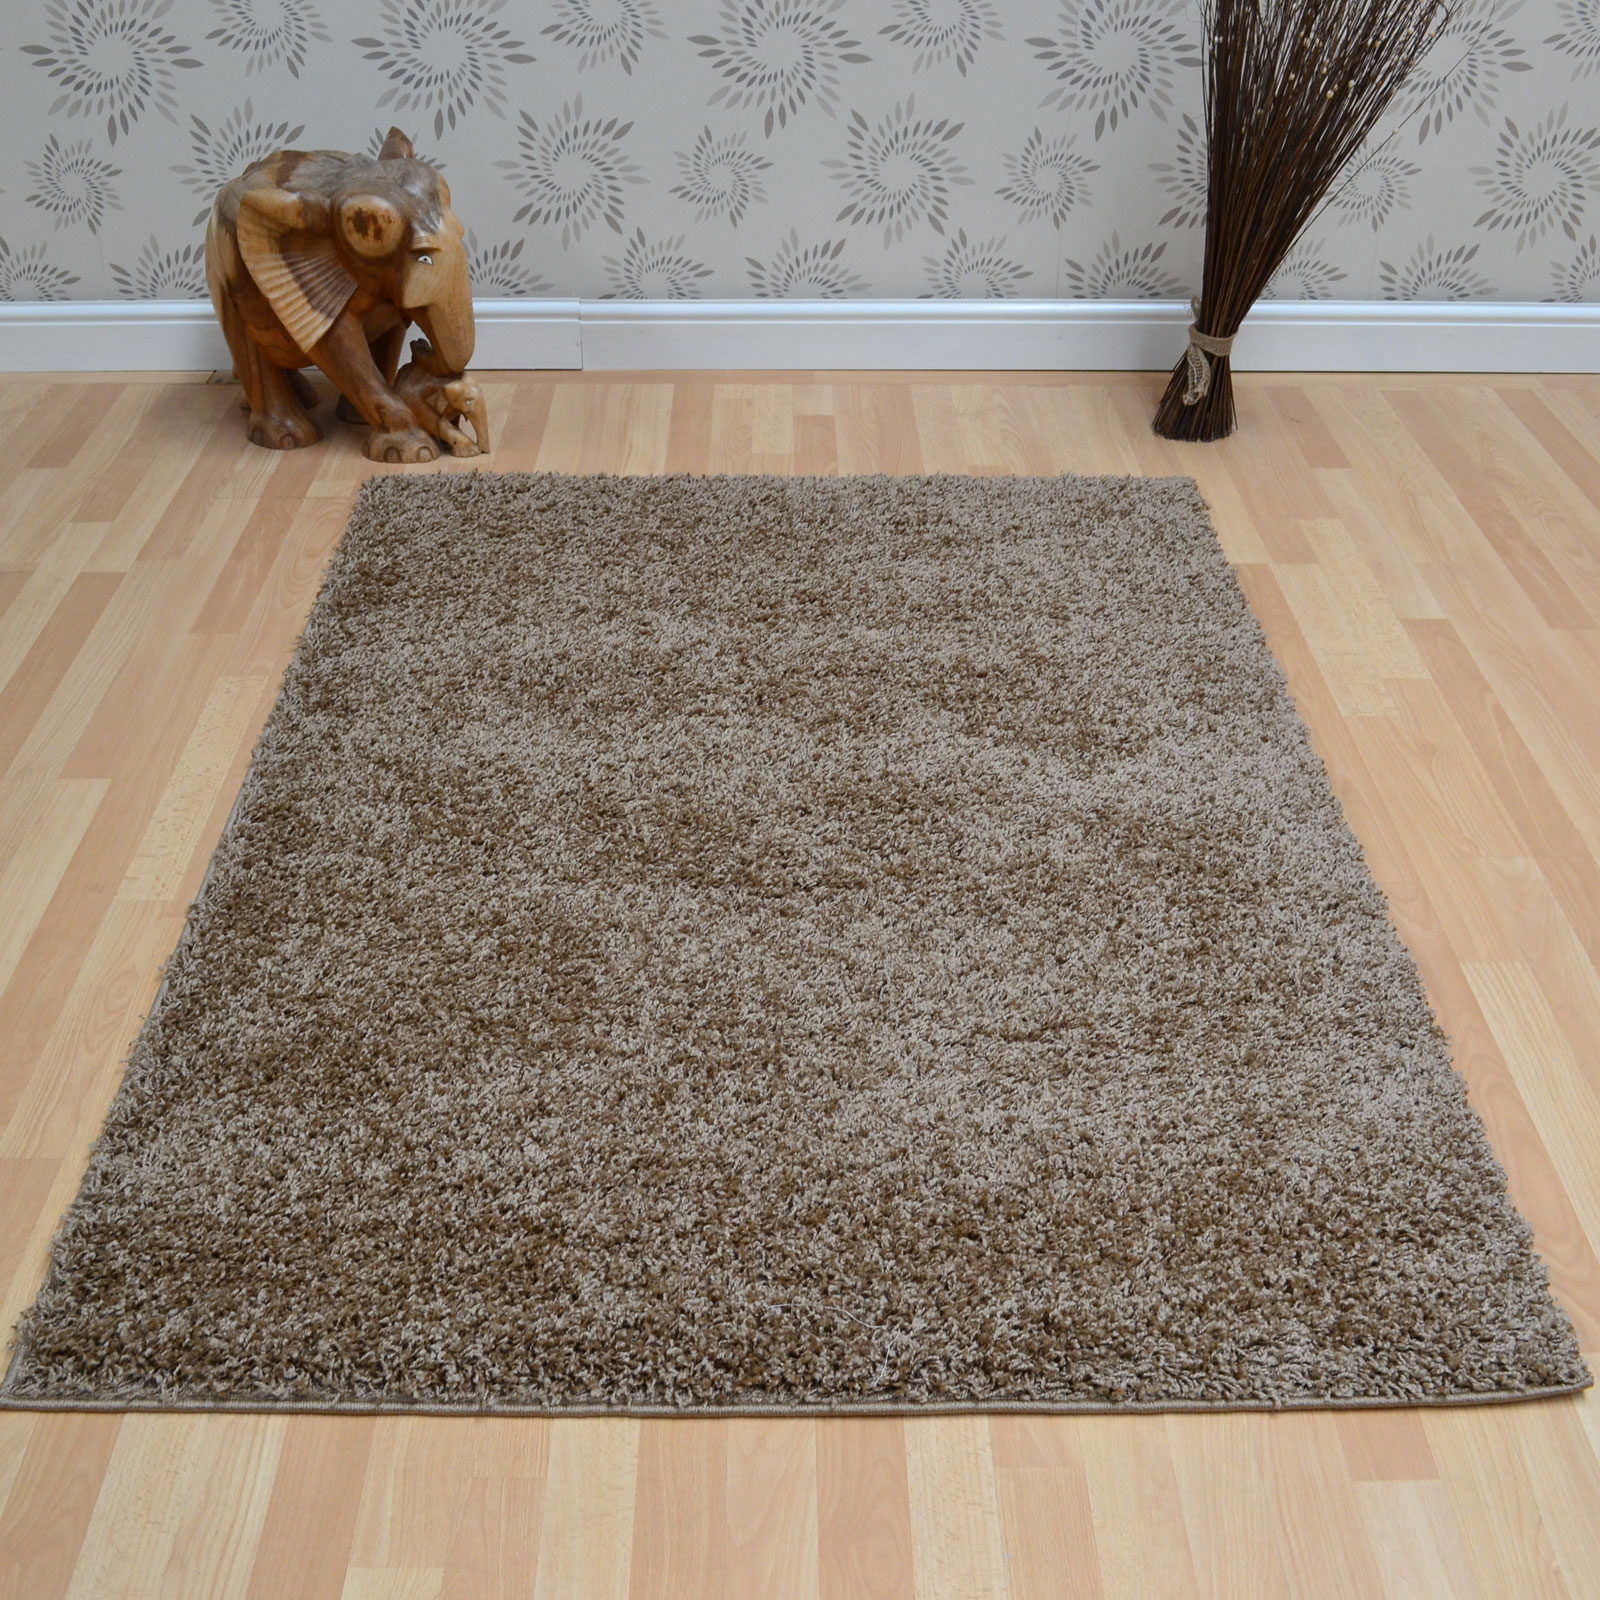 Savanna Shaggy Rugs in Mink